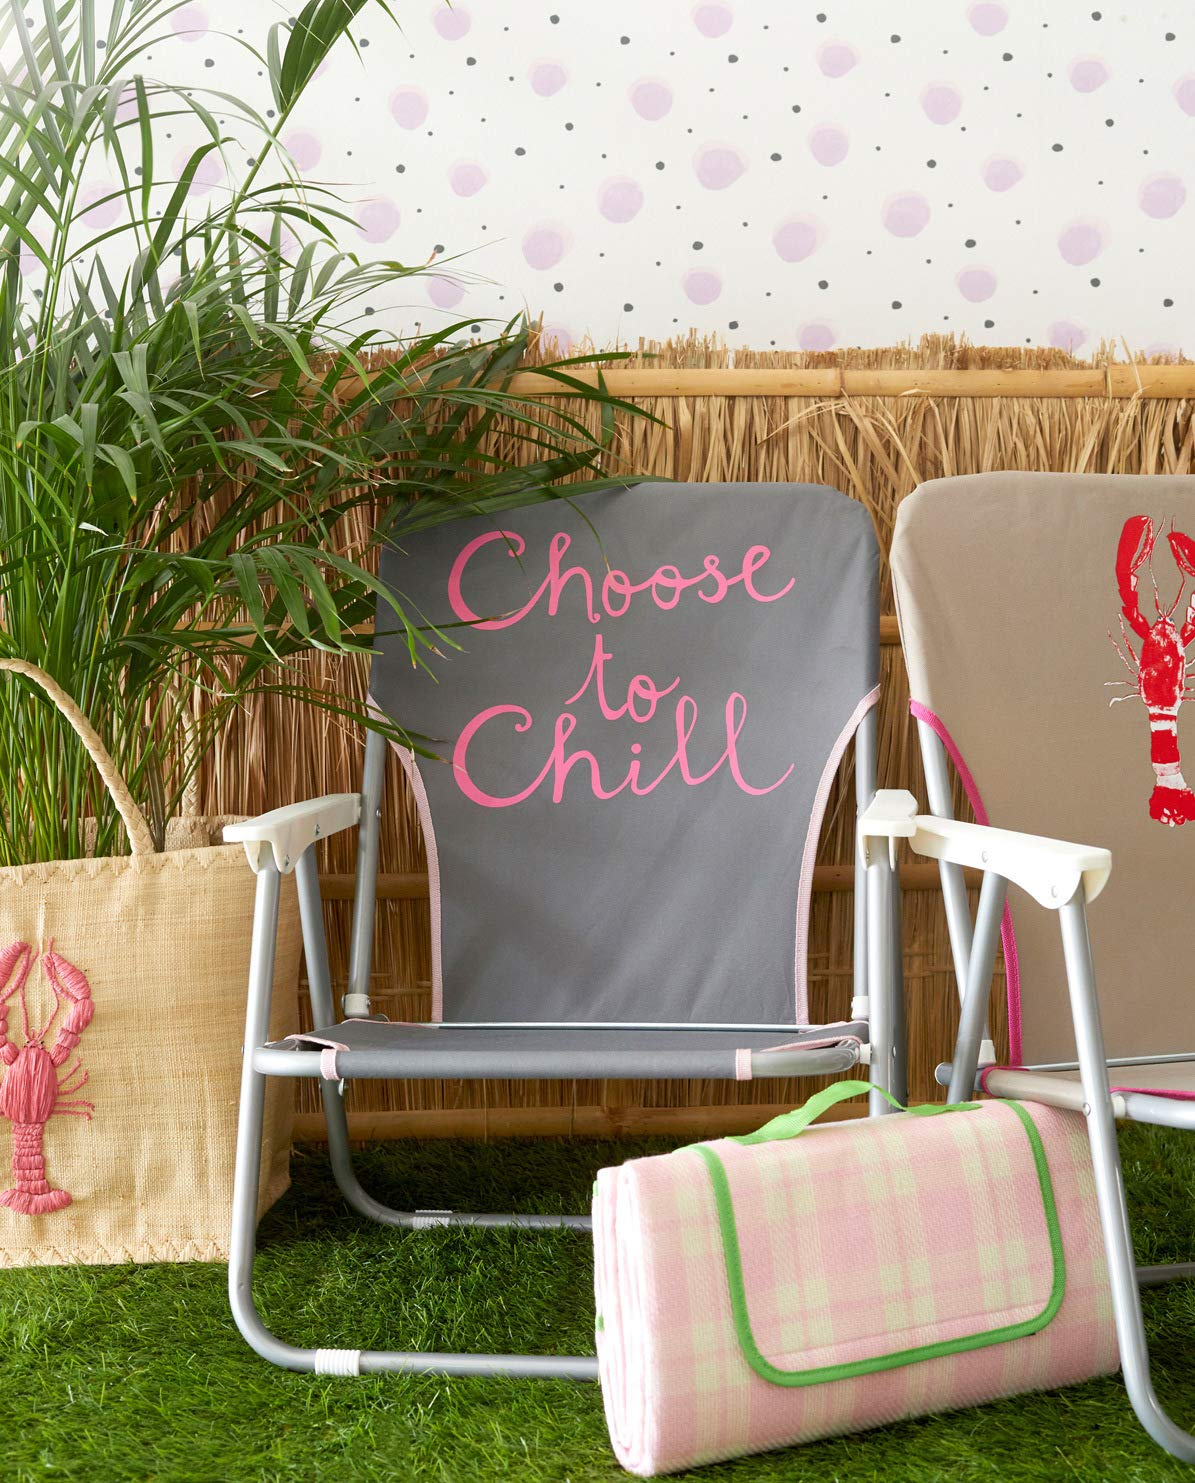 Rice Choose to Chill - Silla Plegable: Amazon.es: Juguetes y ...